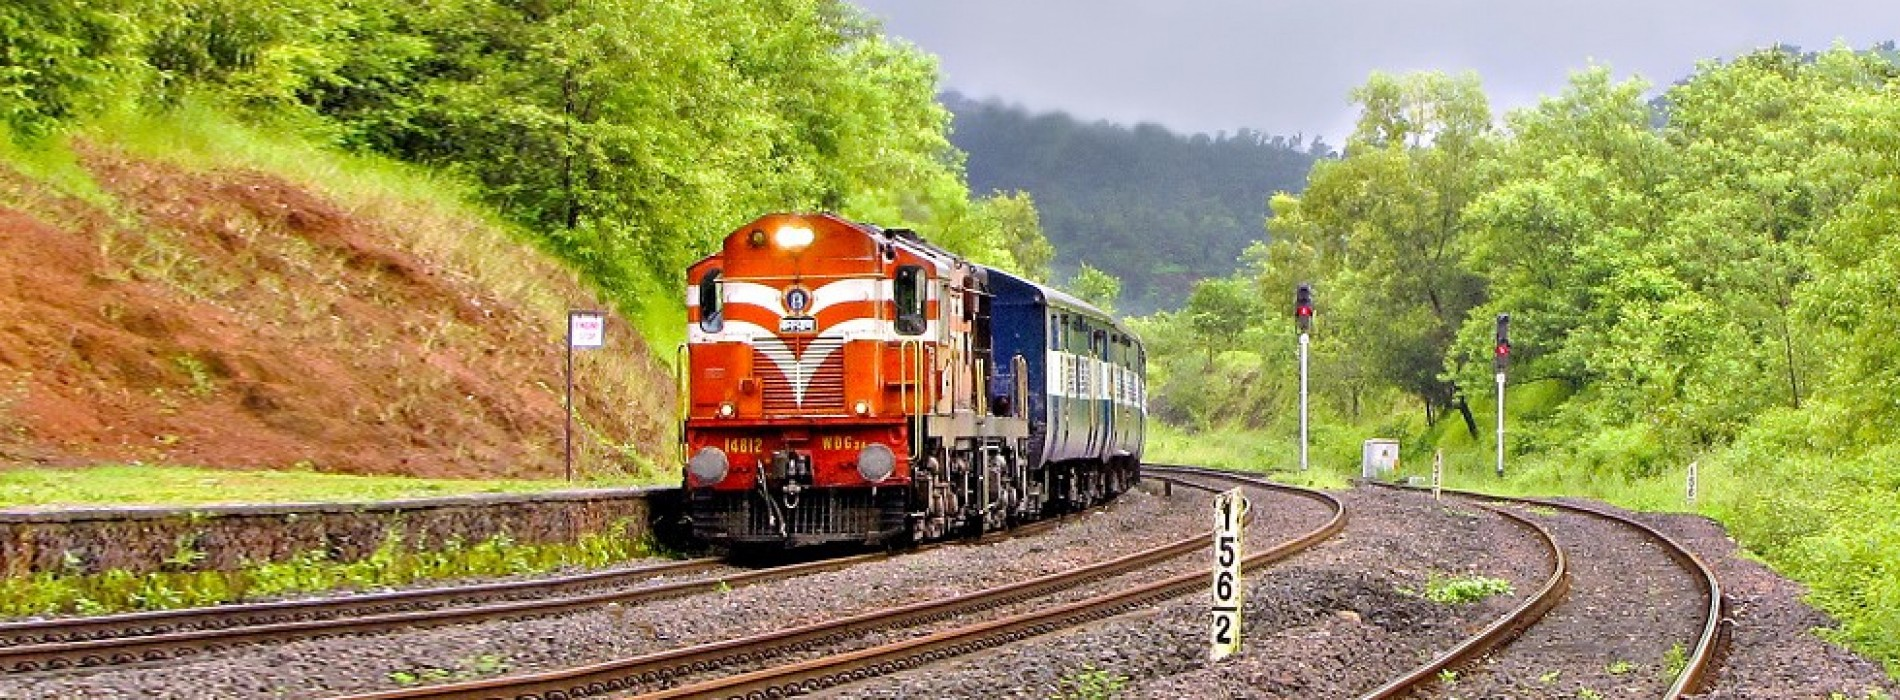 Indian Railways to rename trains after famous literary works